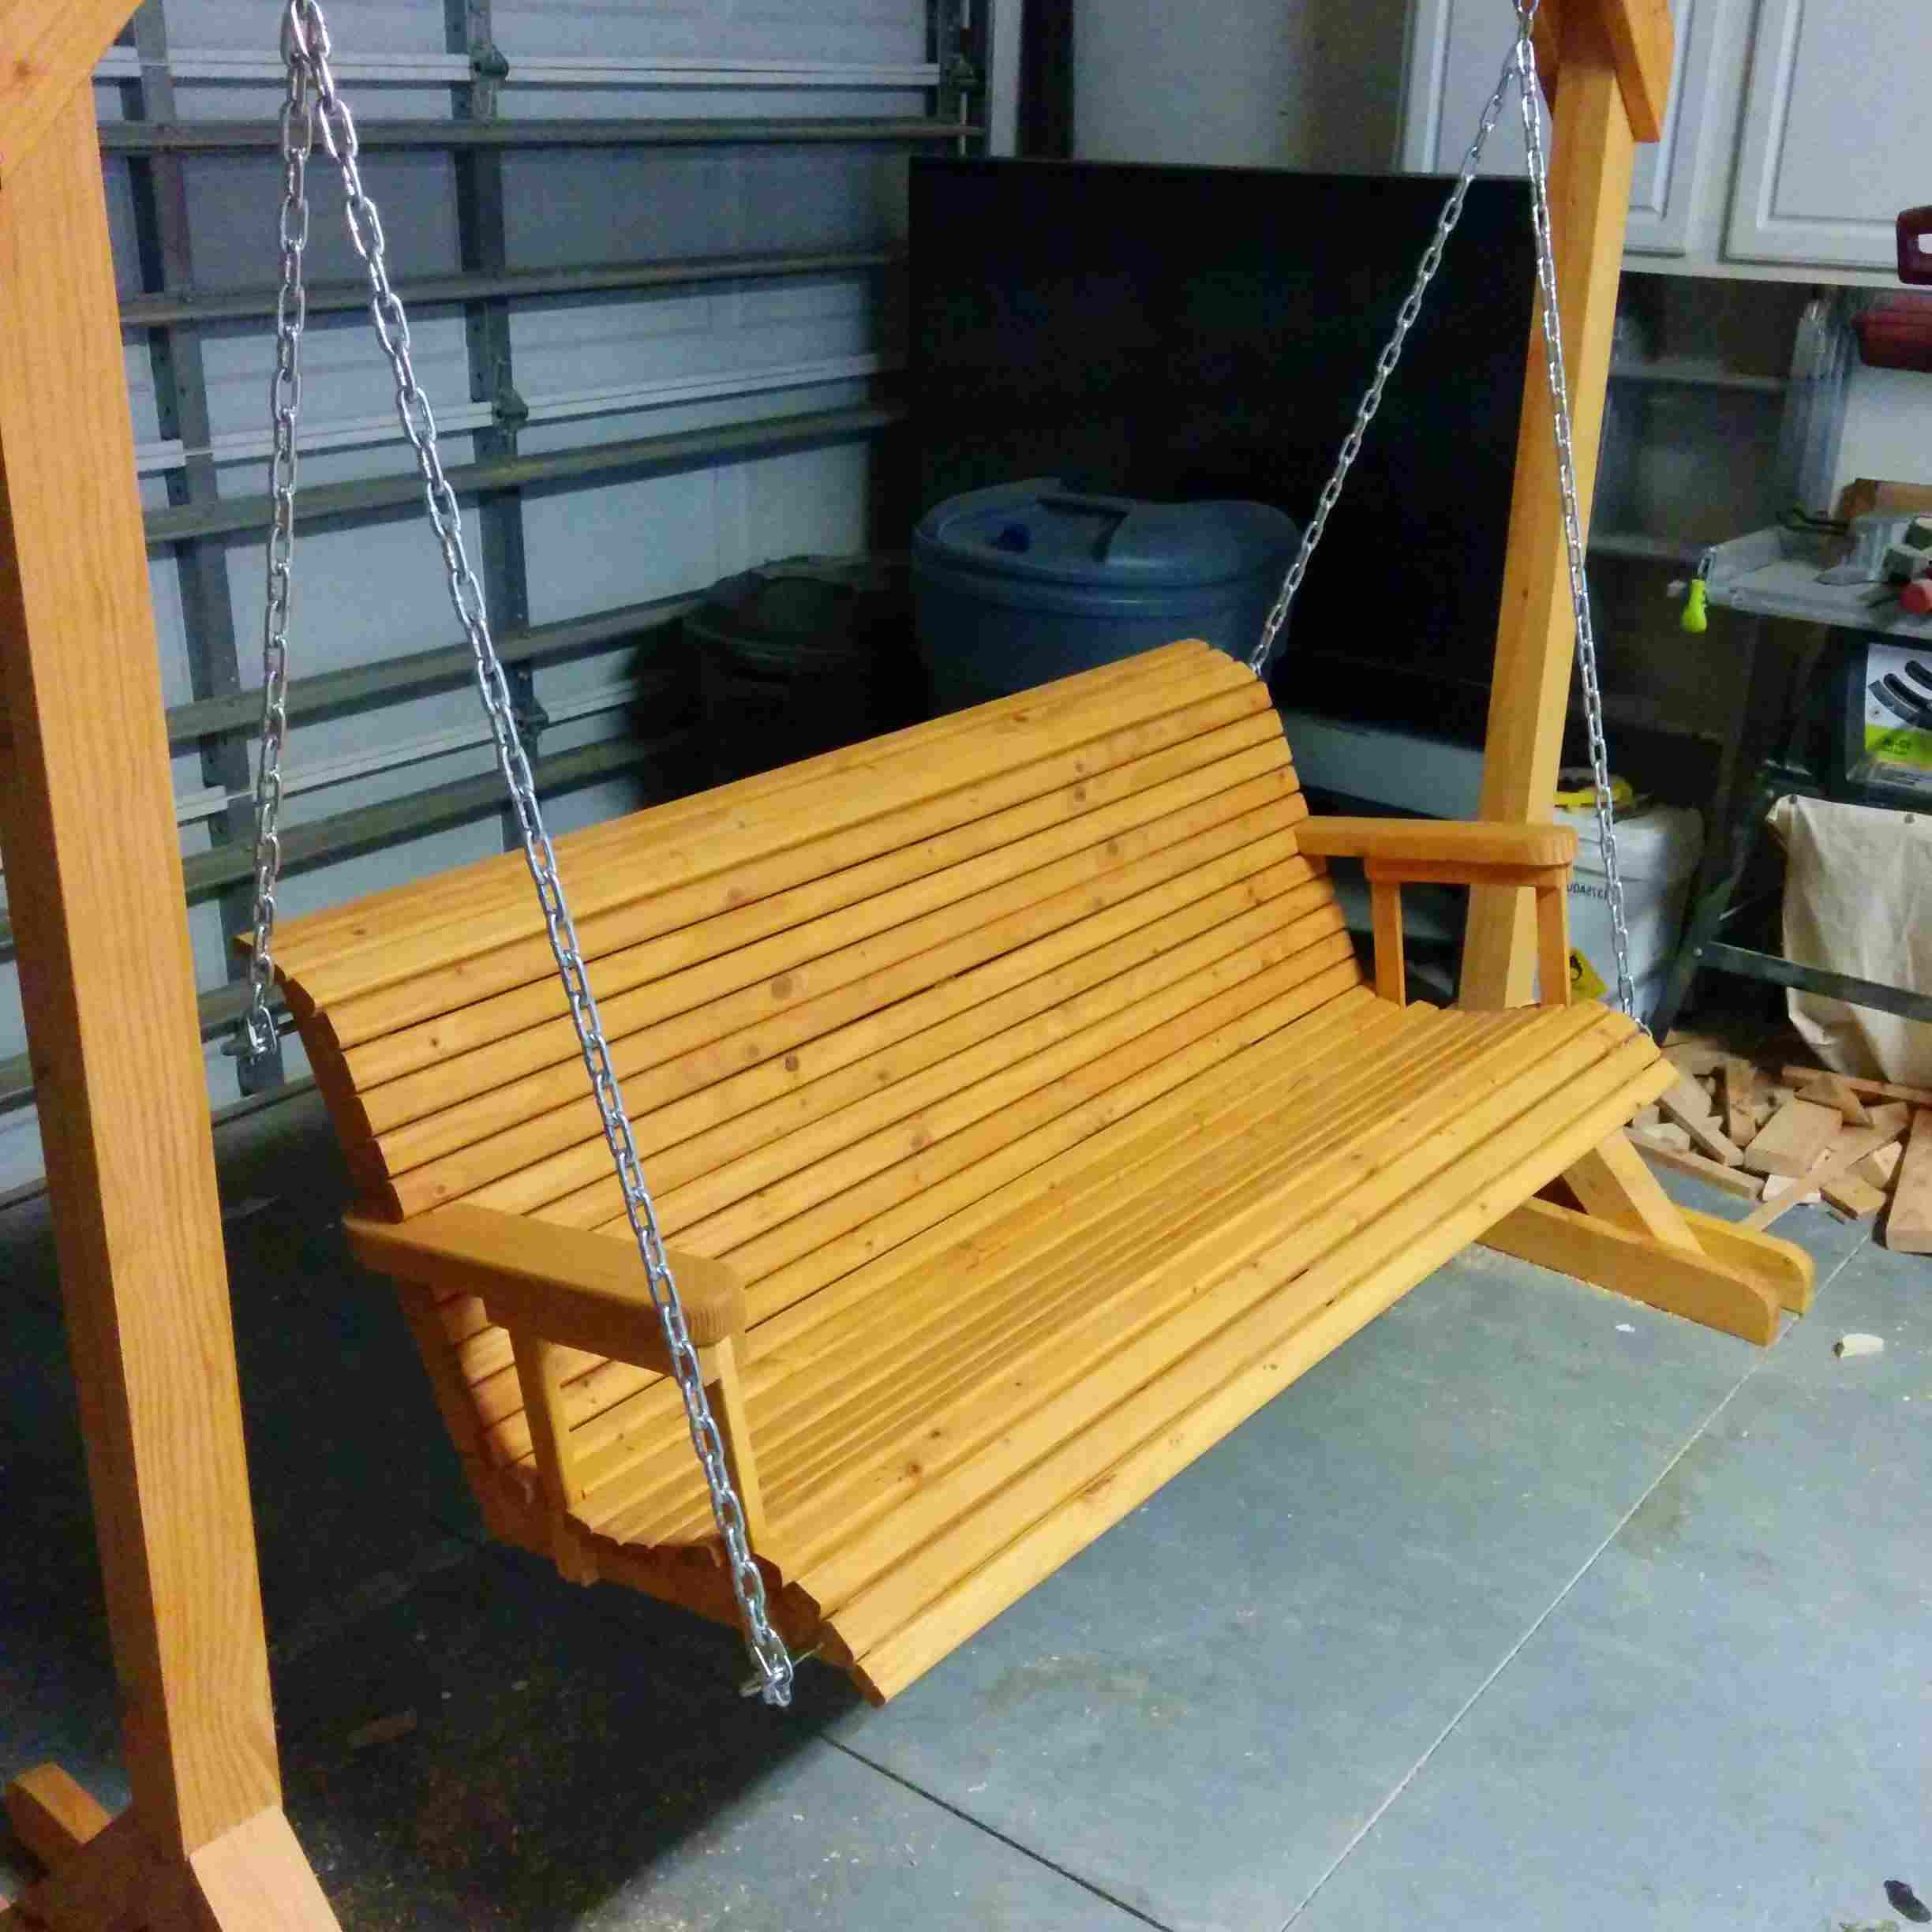 12 Free Porch Swing Plans To Build At Home For Fashionable Patio Porch Swings With Stand (View 27 of 30)